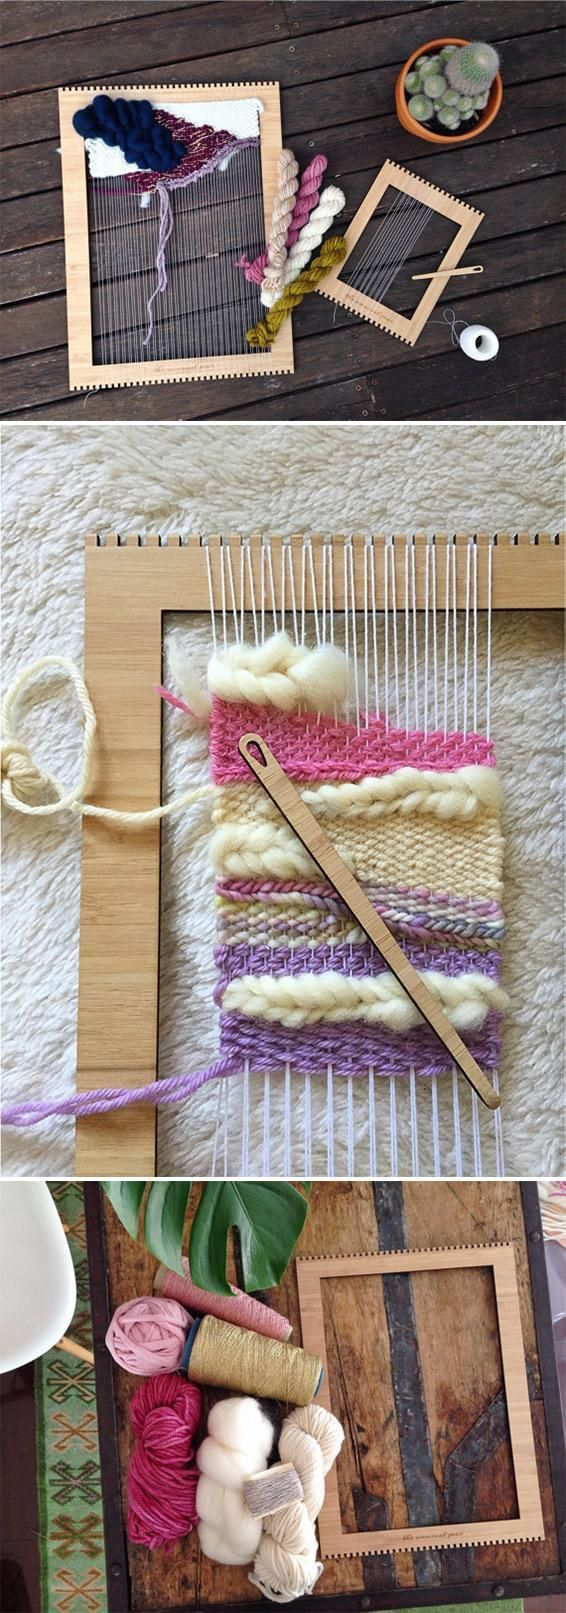 Get Hooked On A New Creative Hobby With A Weaving Loom Kit